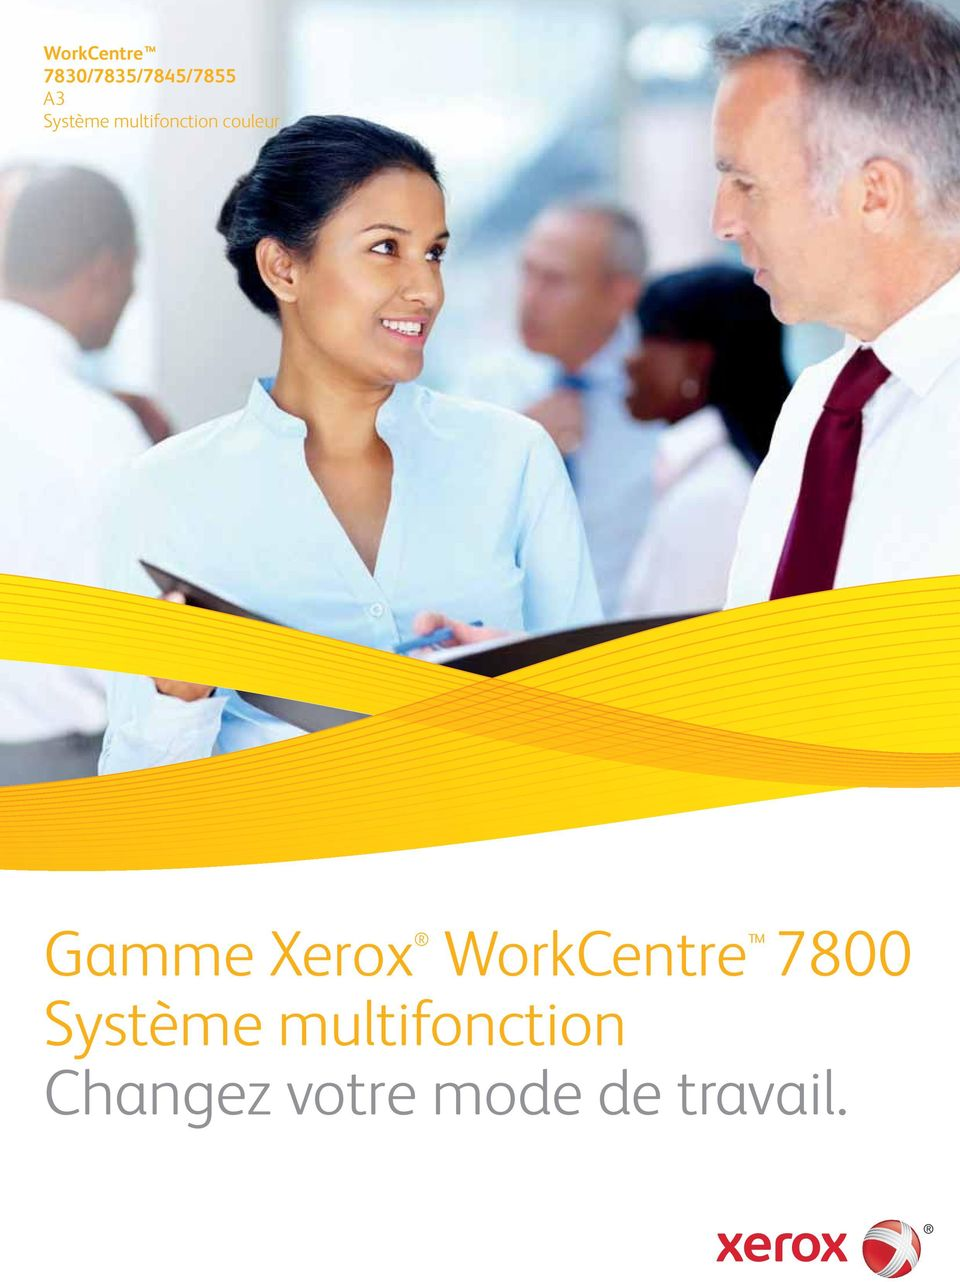 Xerox WorkCentre 7800 Système